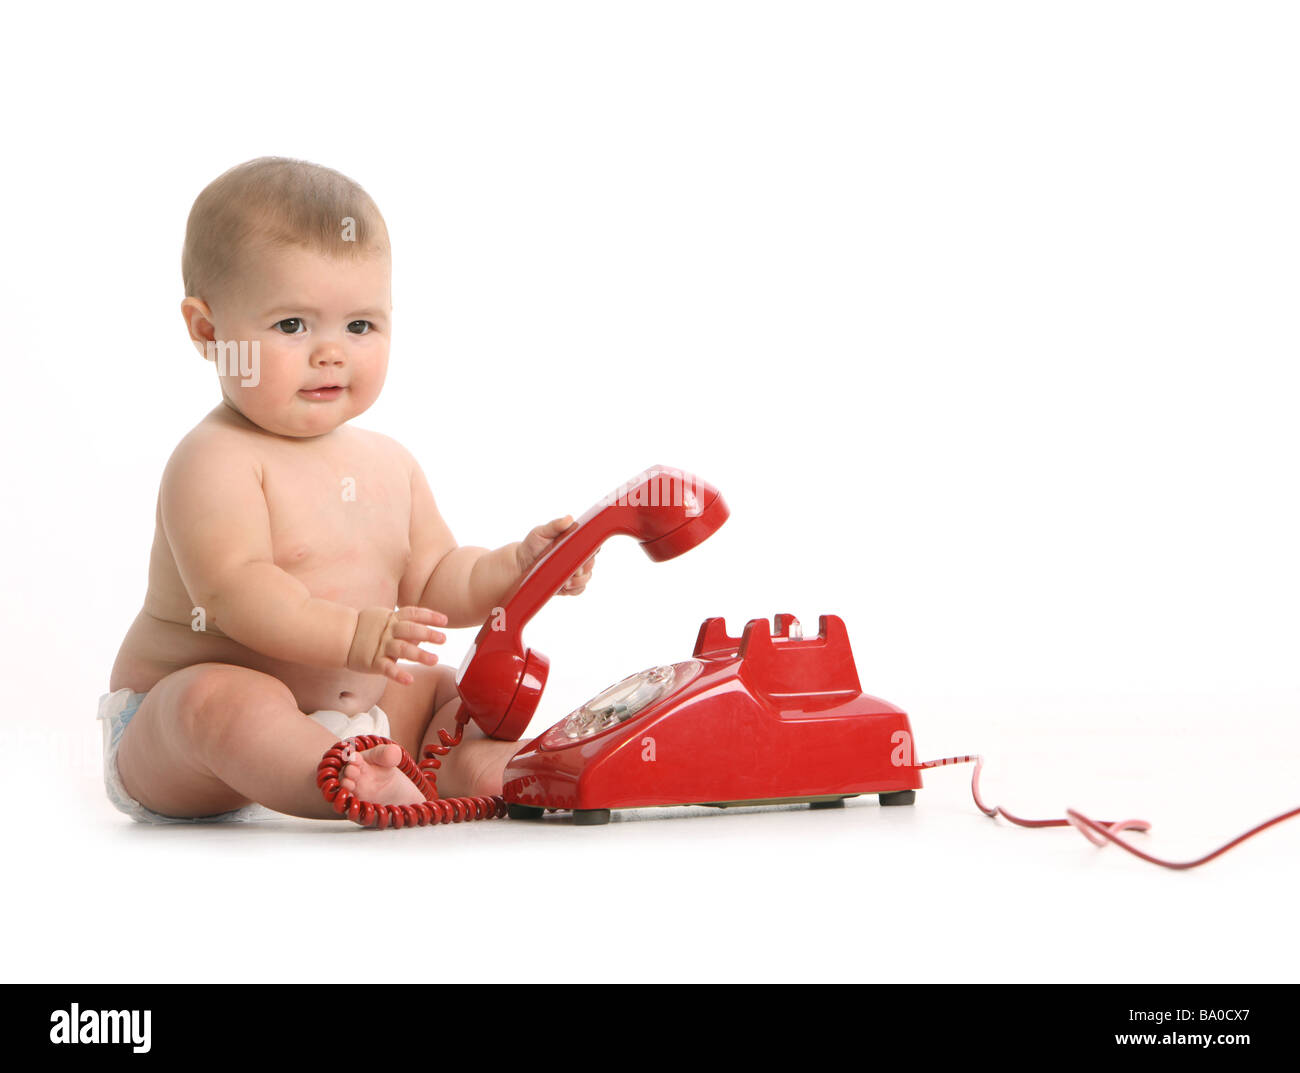 Baby with red telephone on white background - Stock Image